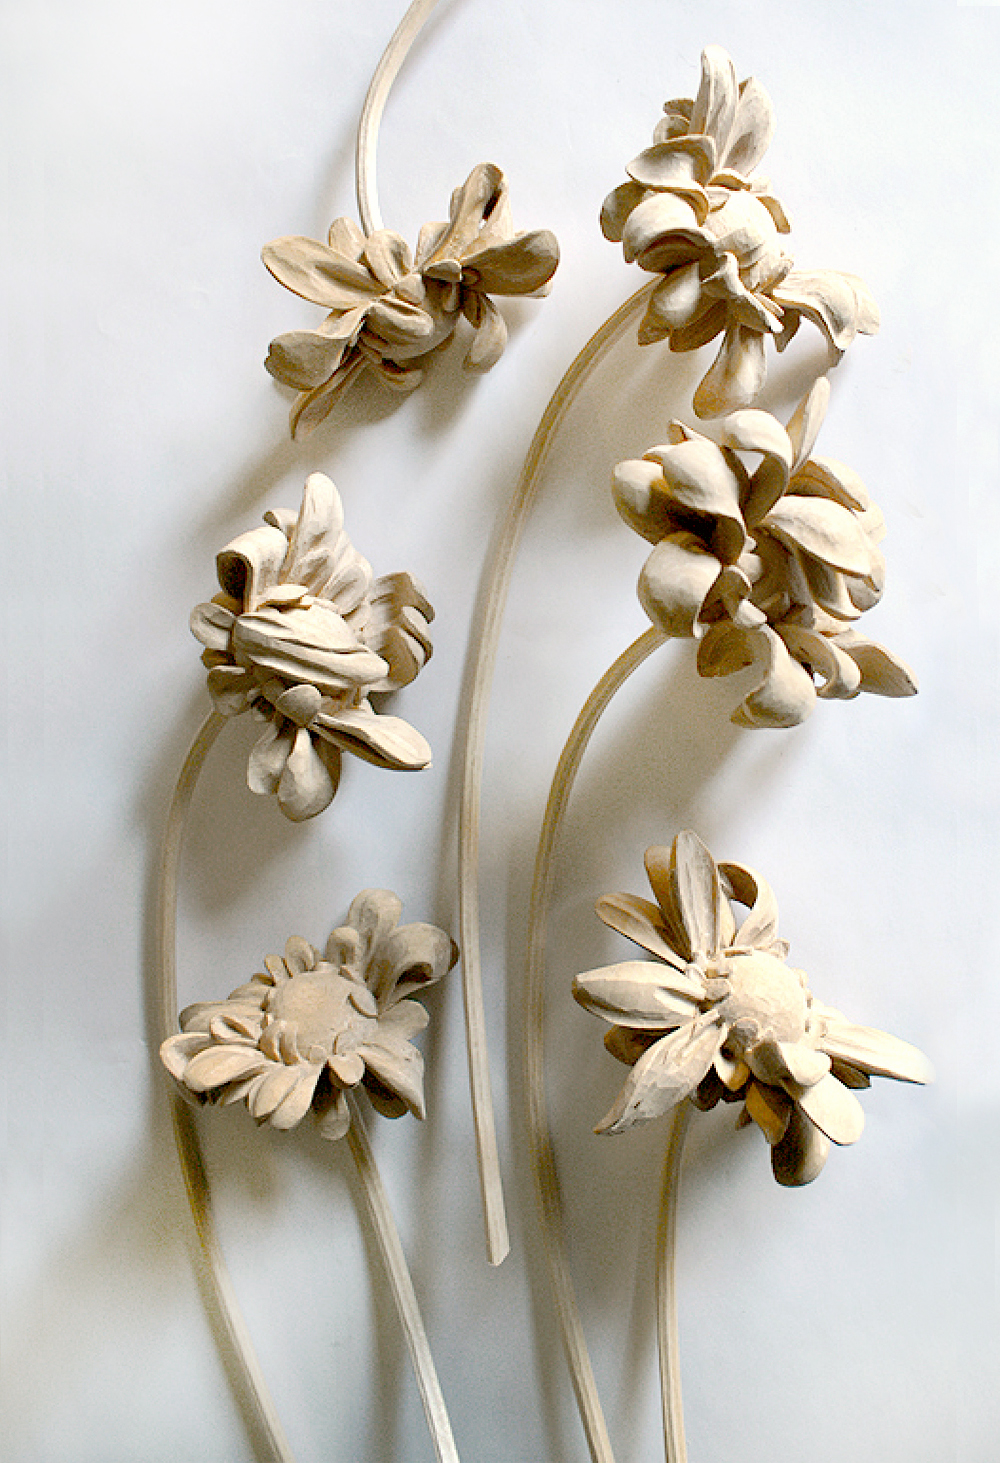 "Wilted Series 1, 2015, Carved Basswood, Approx. 13 X 4"" each"